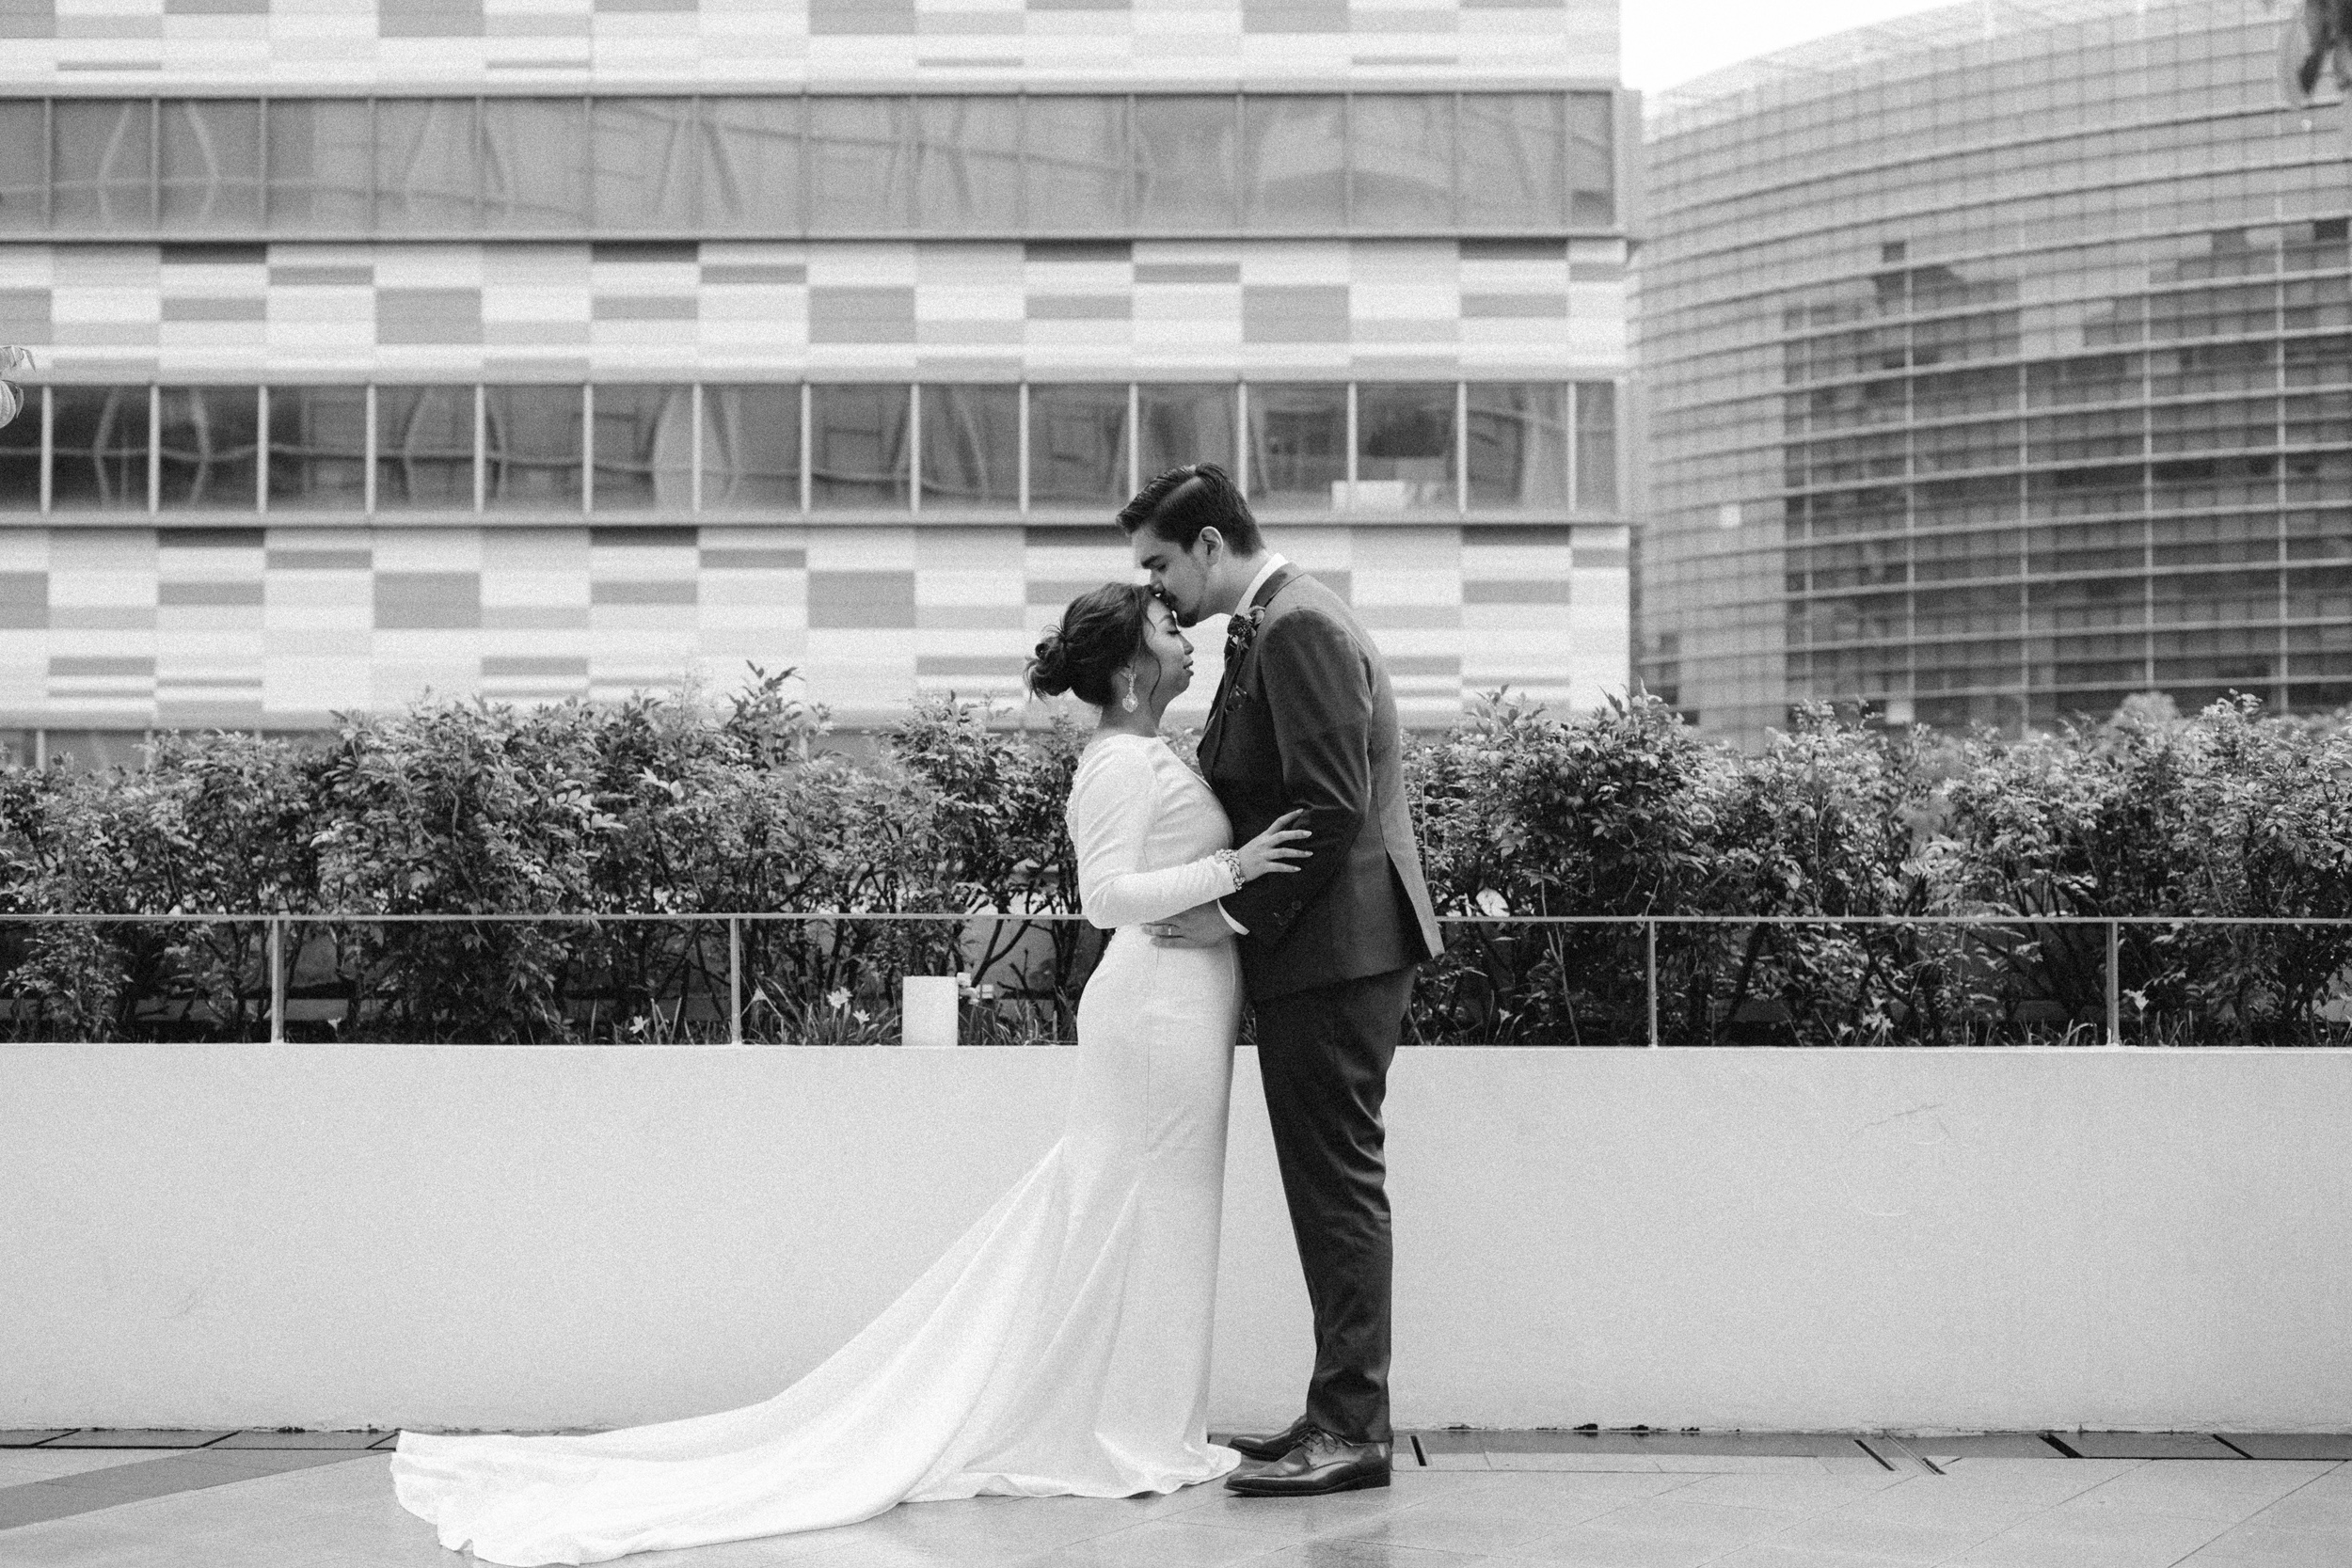 singapore-wedding-photographer-dinah-sam-wemadethese-70.jpg